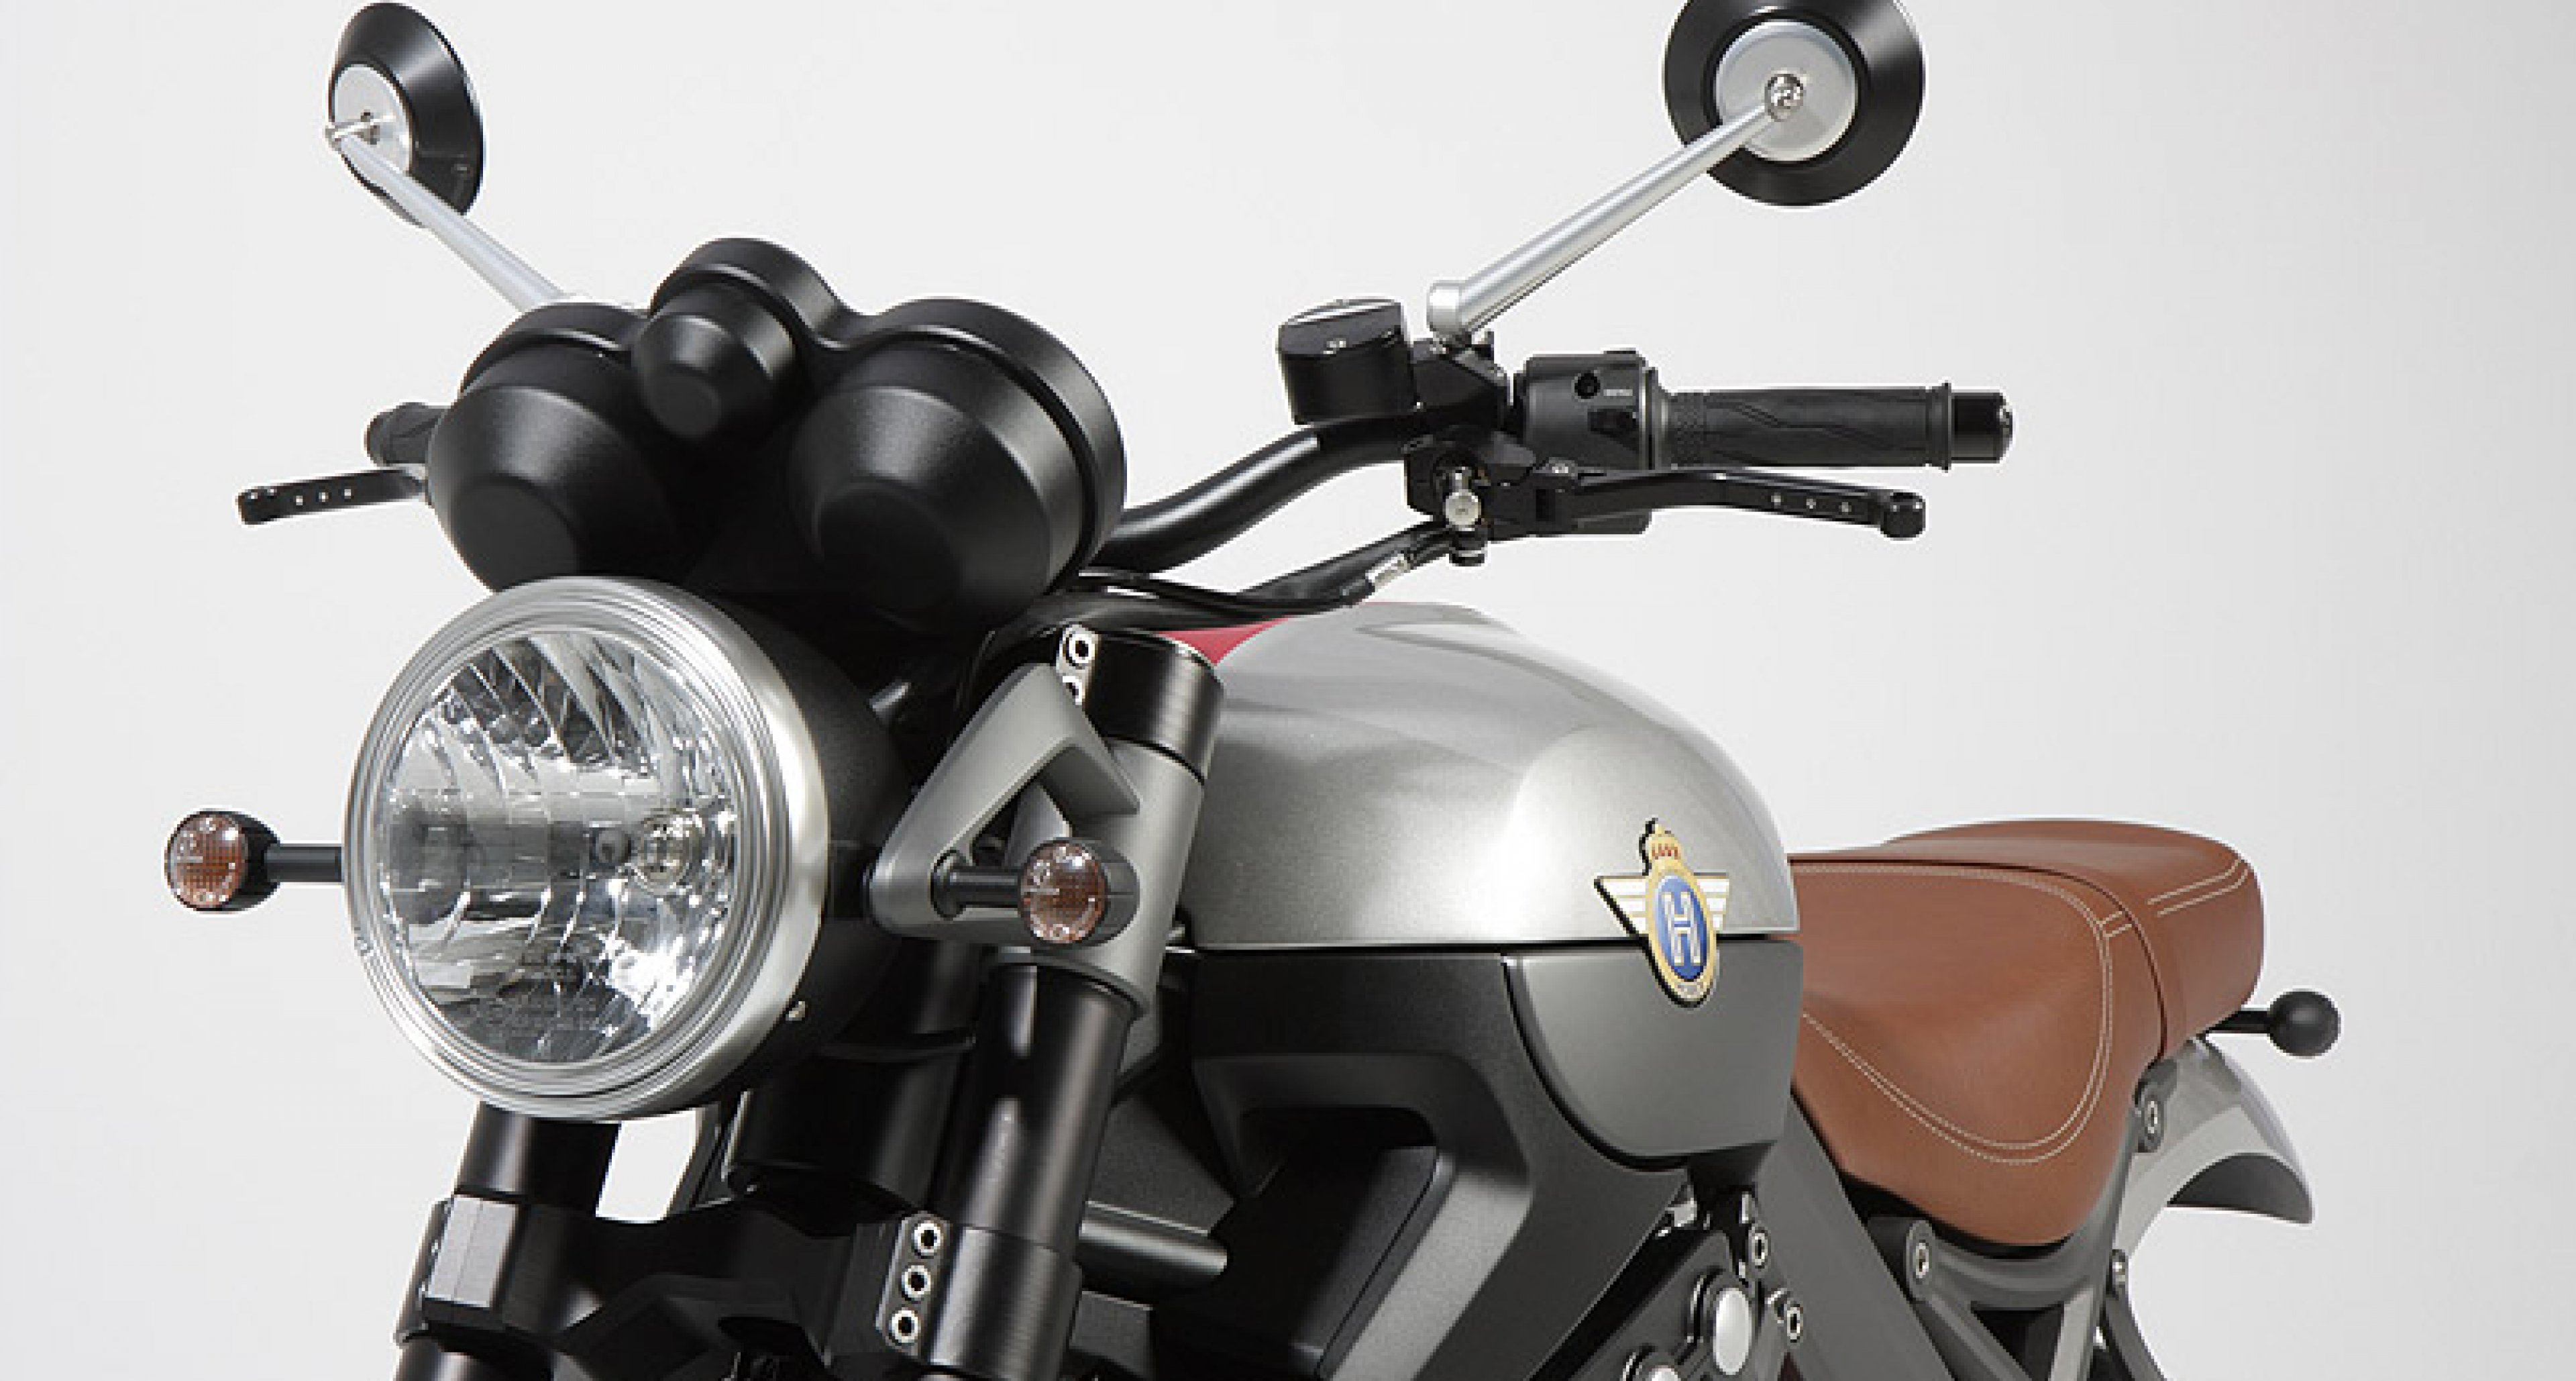 Horex: New Bike From a Revived German Brand